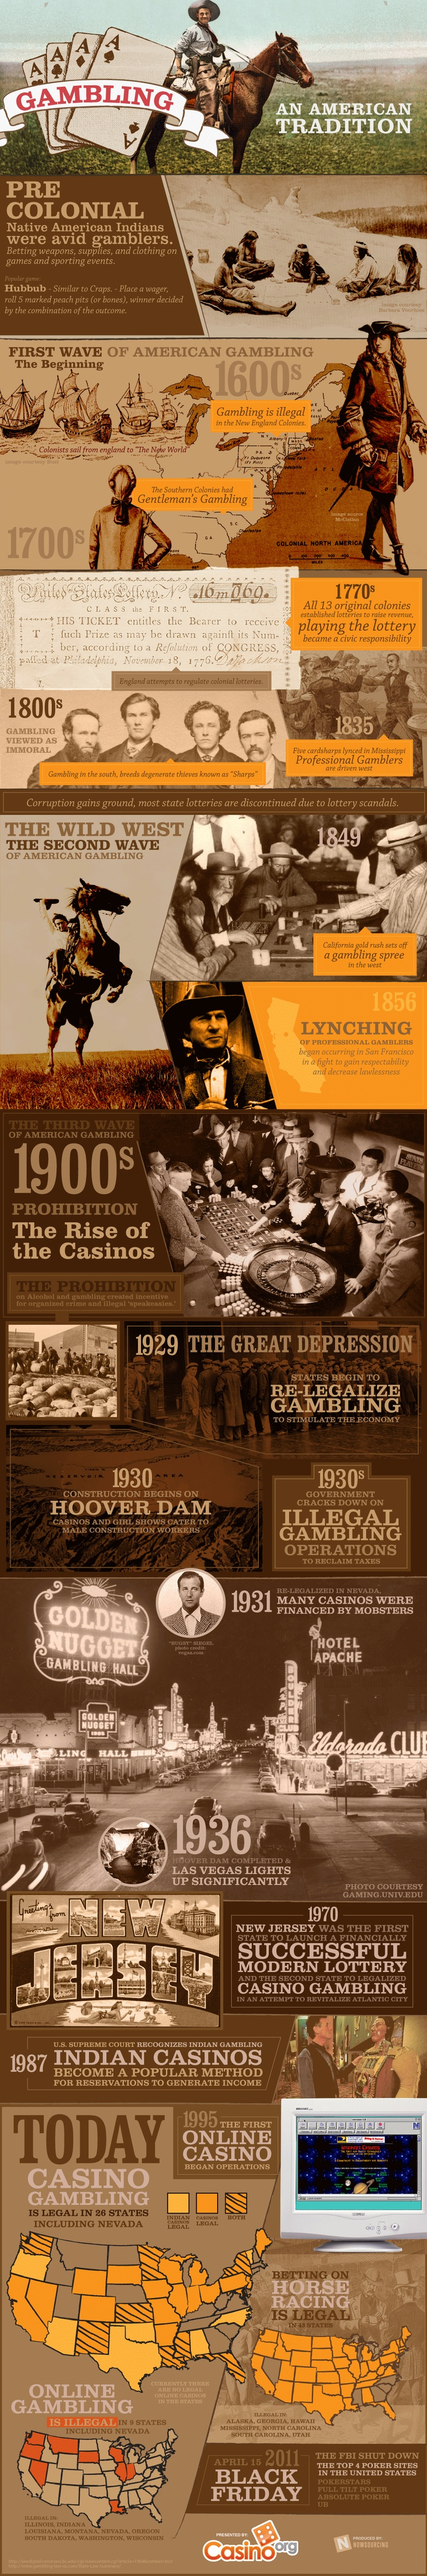 World history of gambling www firelake grand casino com